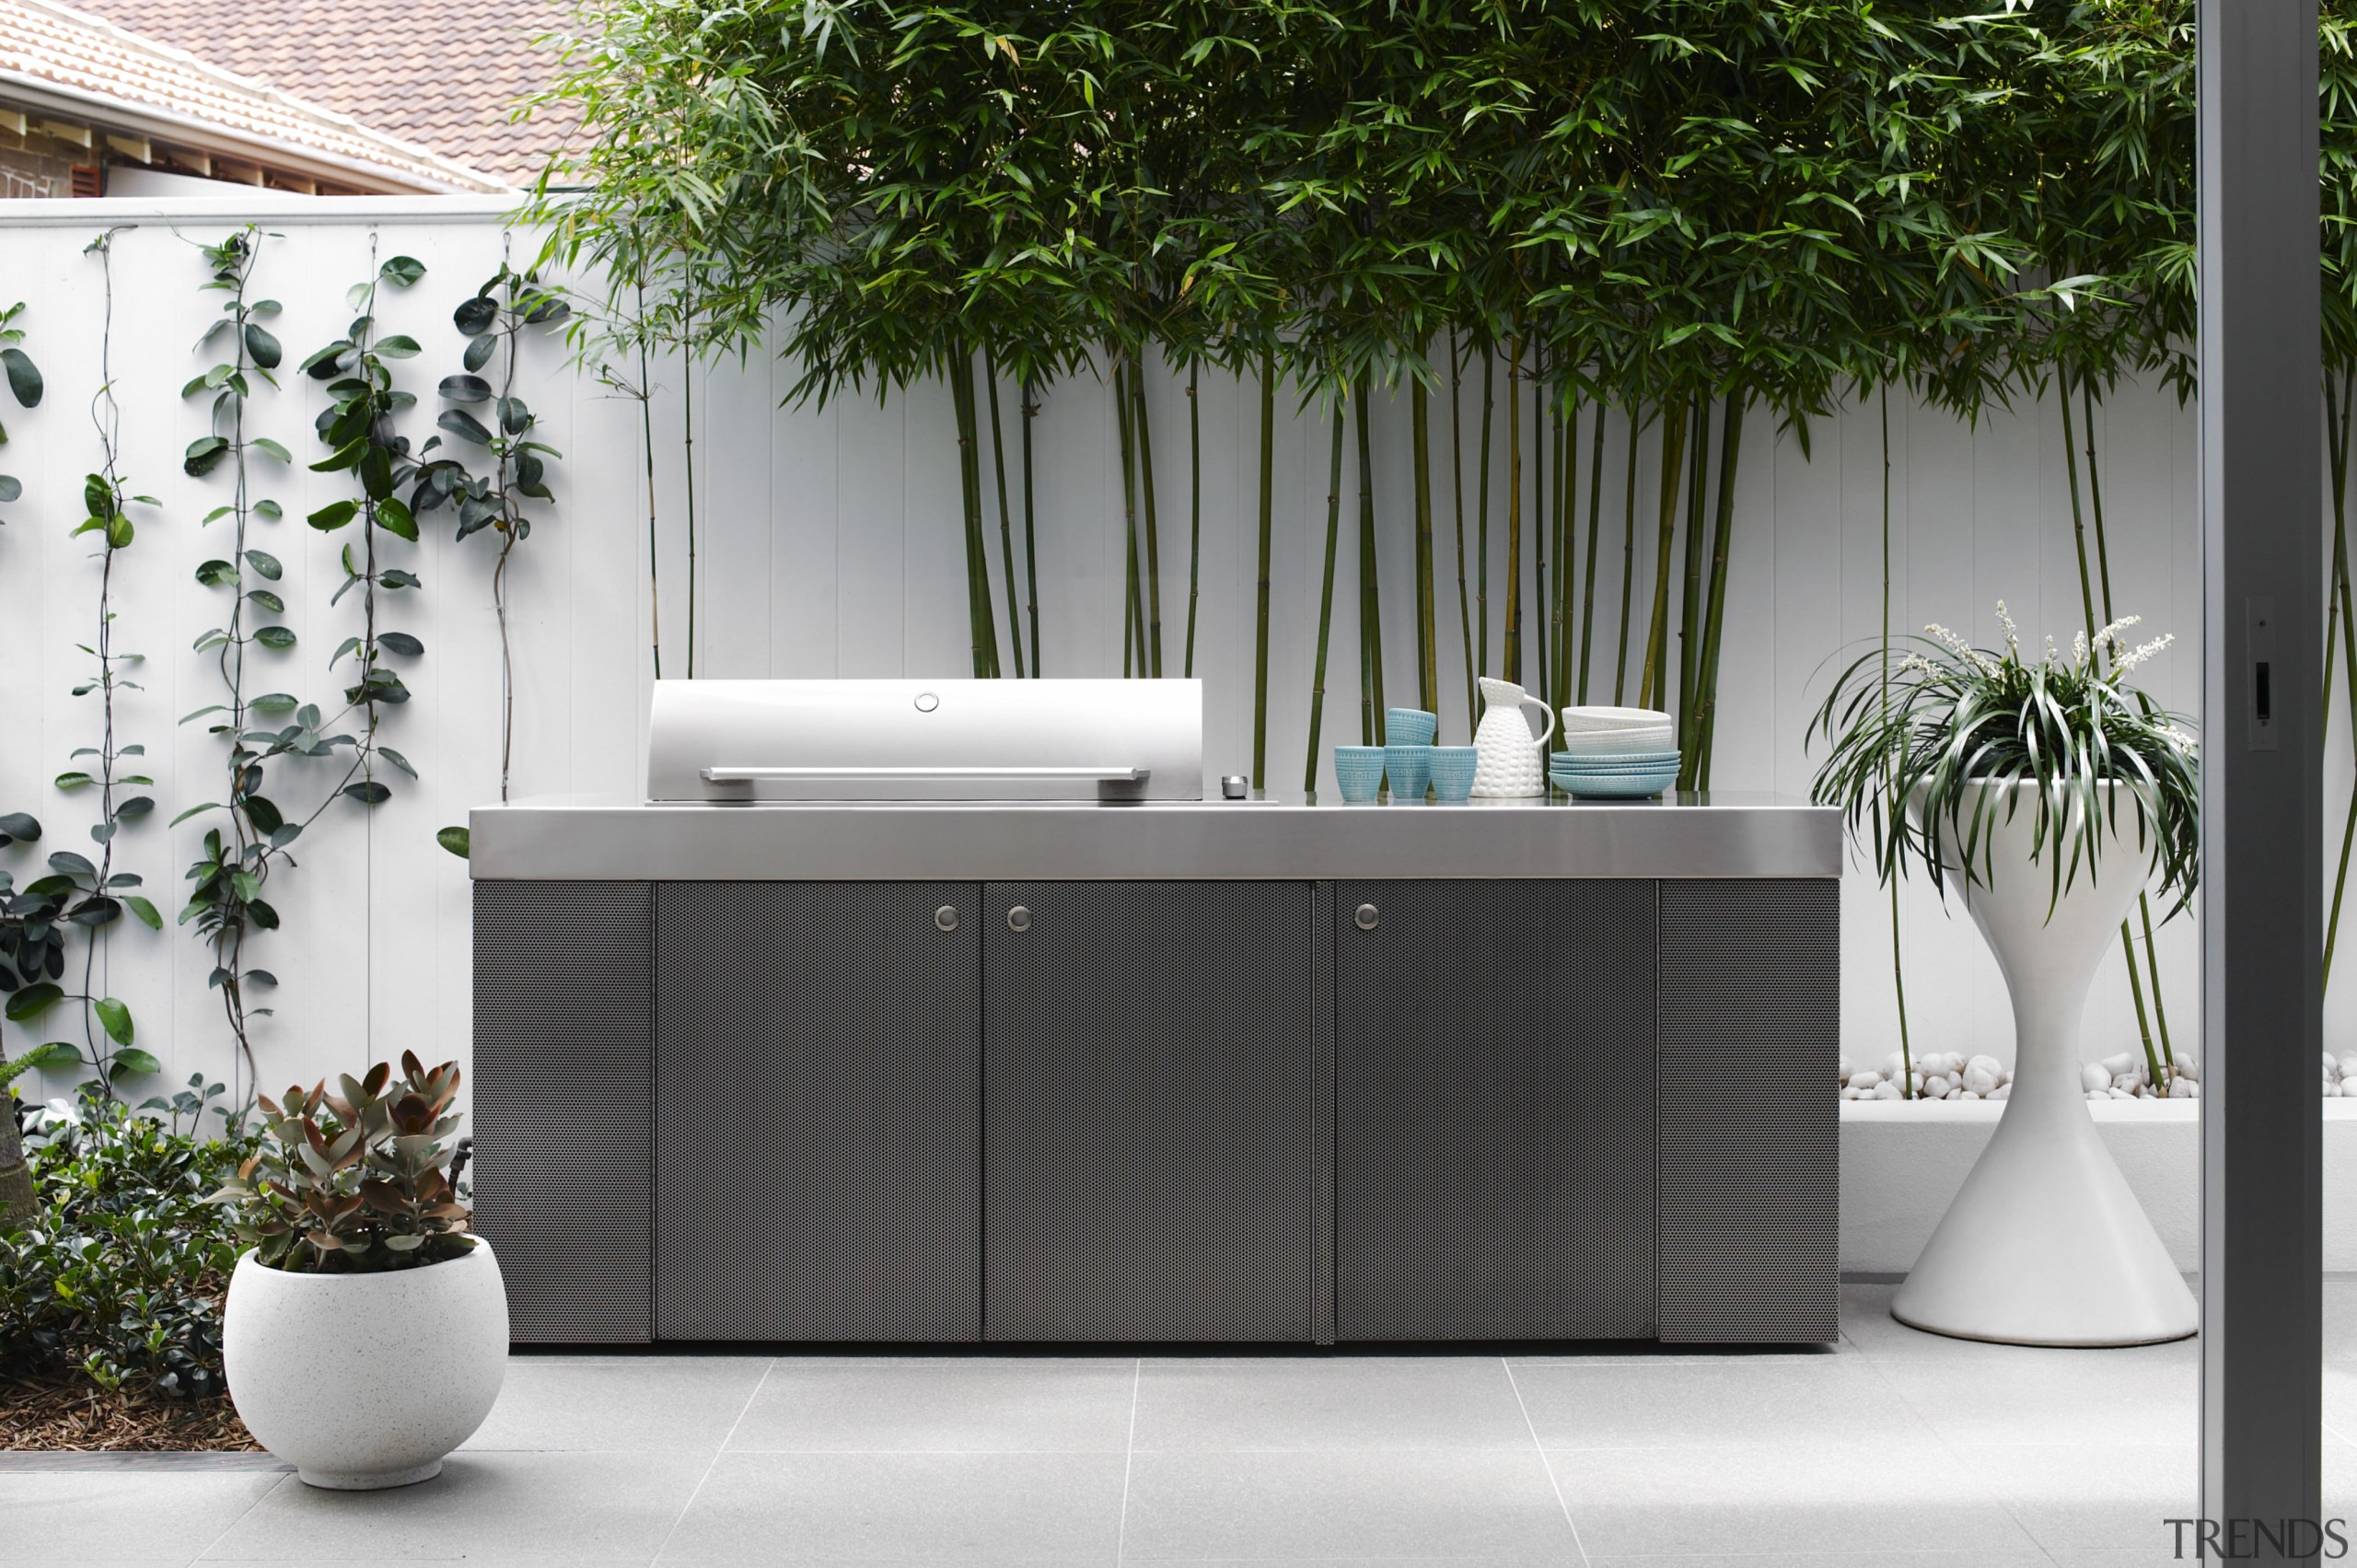 This large custom barbecue designed by Secret Gardens flowerpot, furniture, interior design, product design, table, gray, white